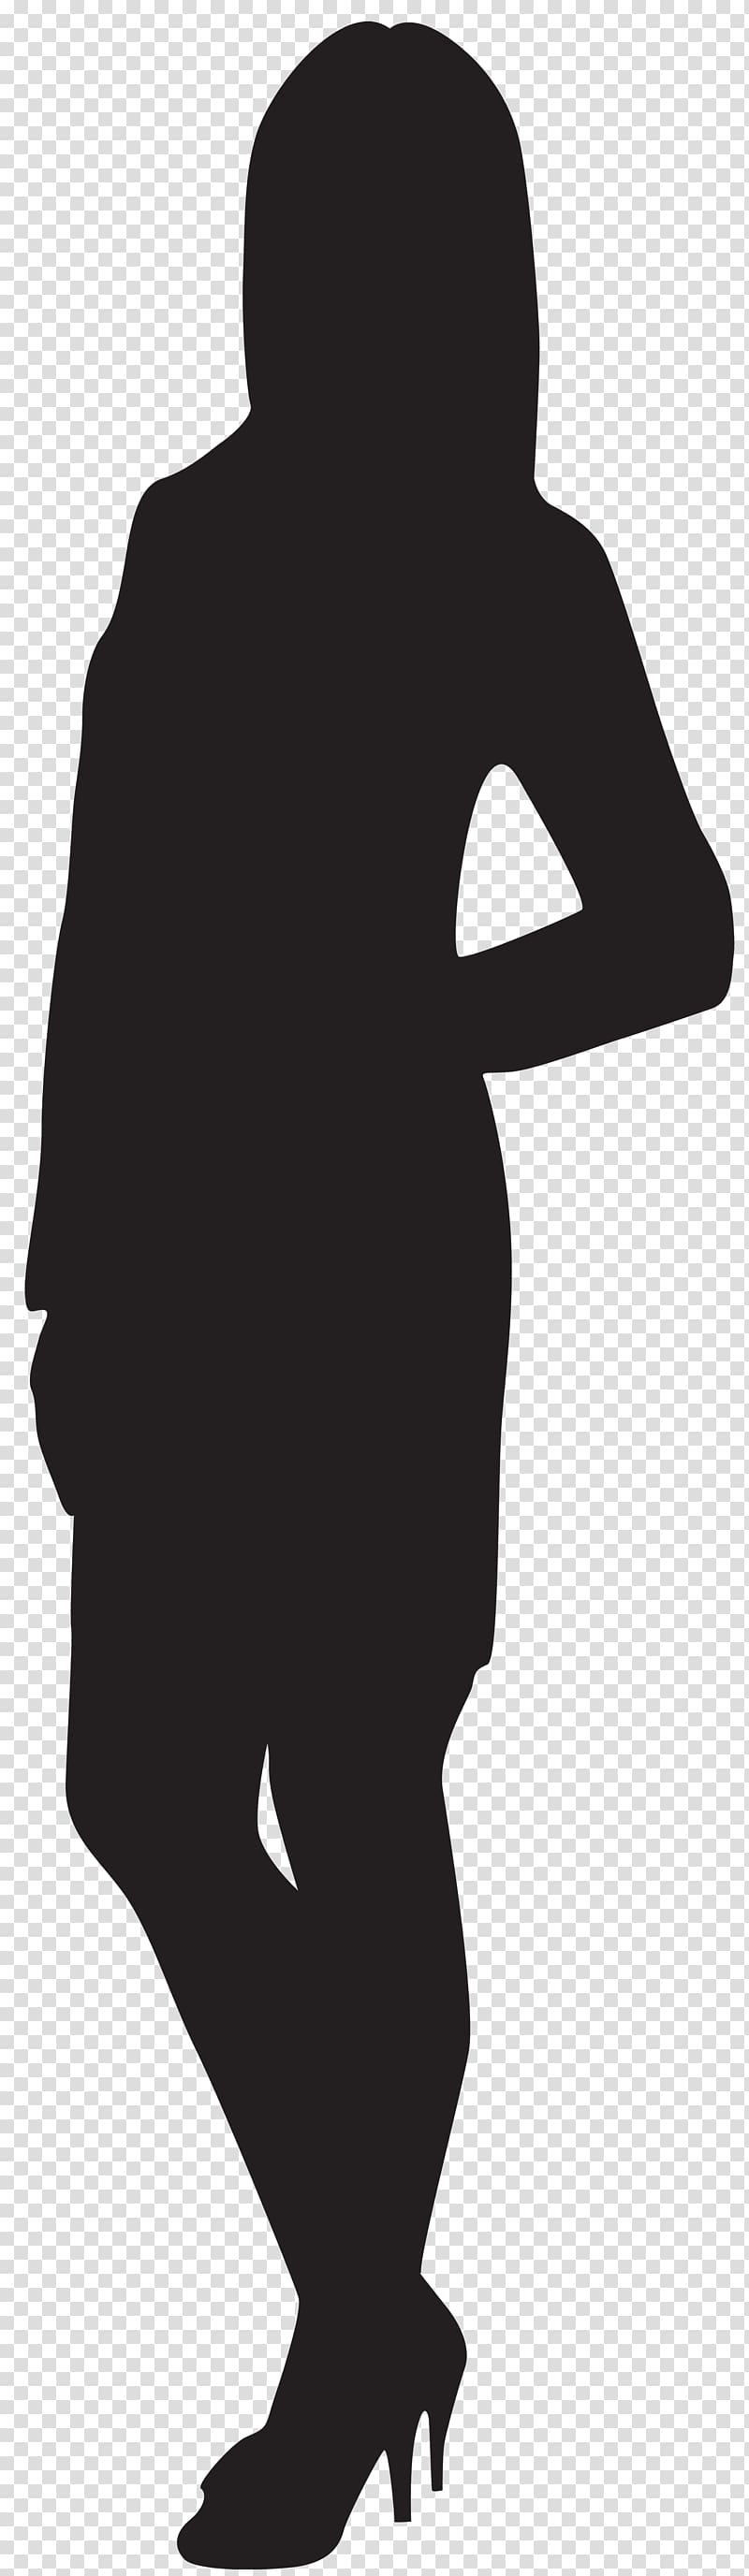 Clipart standing women dress black and white salon transparent library Silhouette of woman, Black and white Human behavior Shoulder, Female ... transparent library